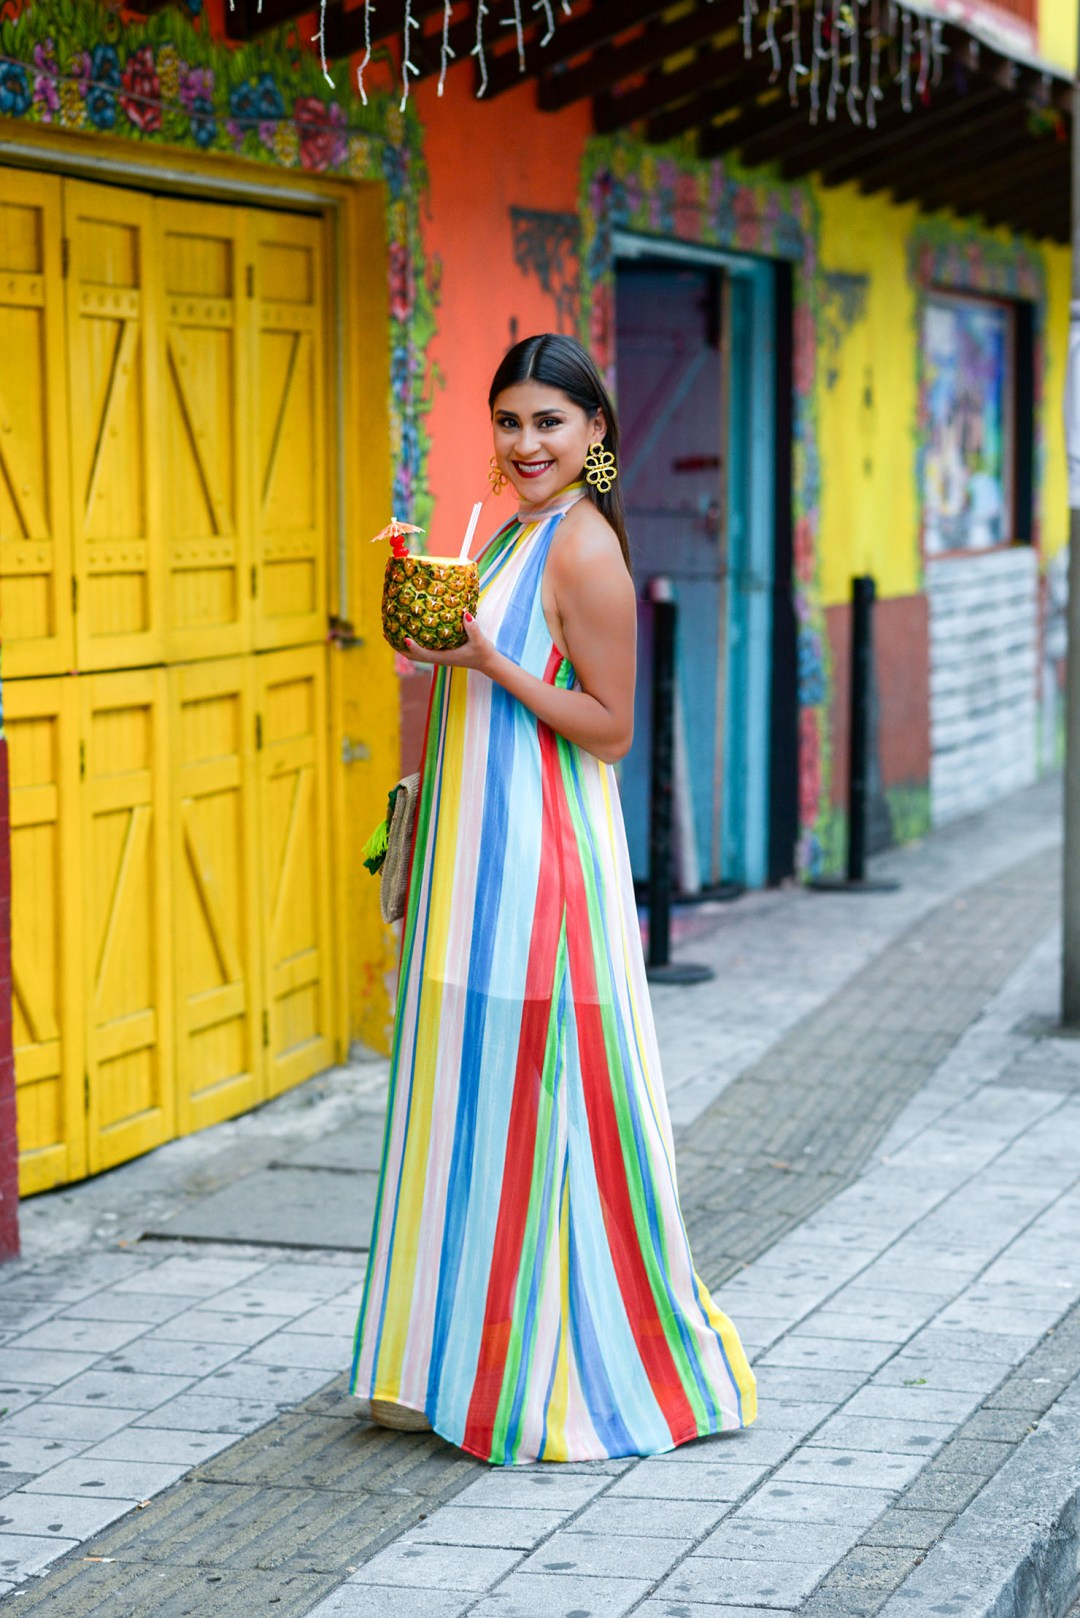 Lifestyle blogger Kelsey Kaplan of Kelsey Kaplan Fashion wearing rainbow maxi dress and straw clutch purse in Medellin